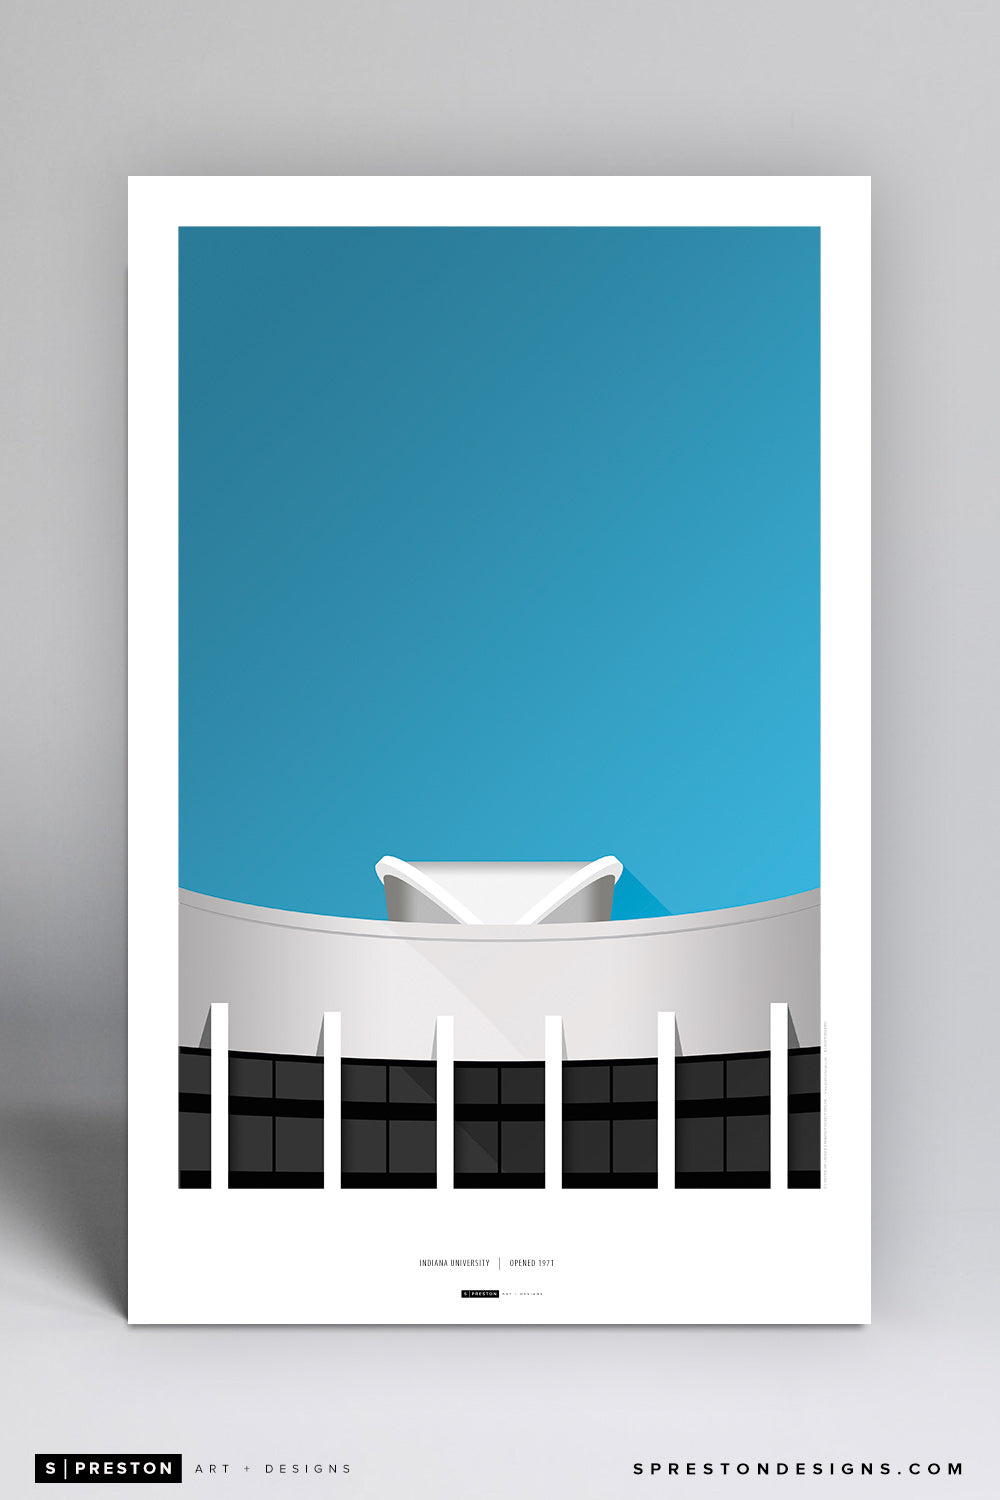 Minimalist Assembly Hall Poster Print Indiana University - S Preston